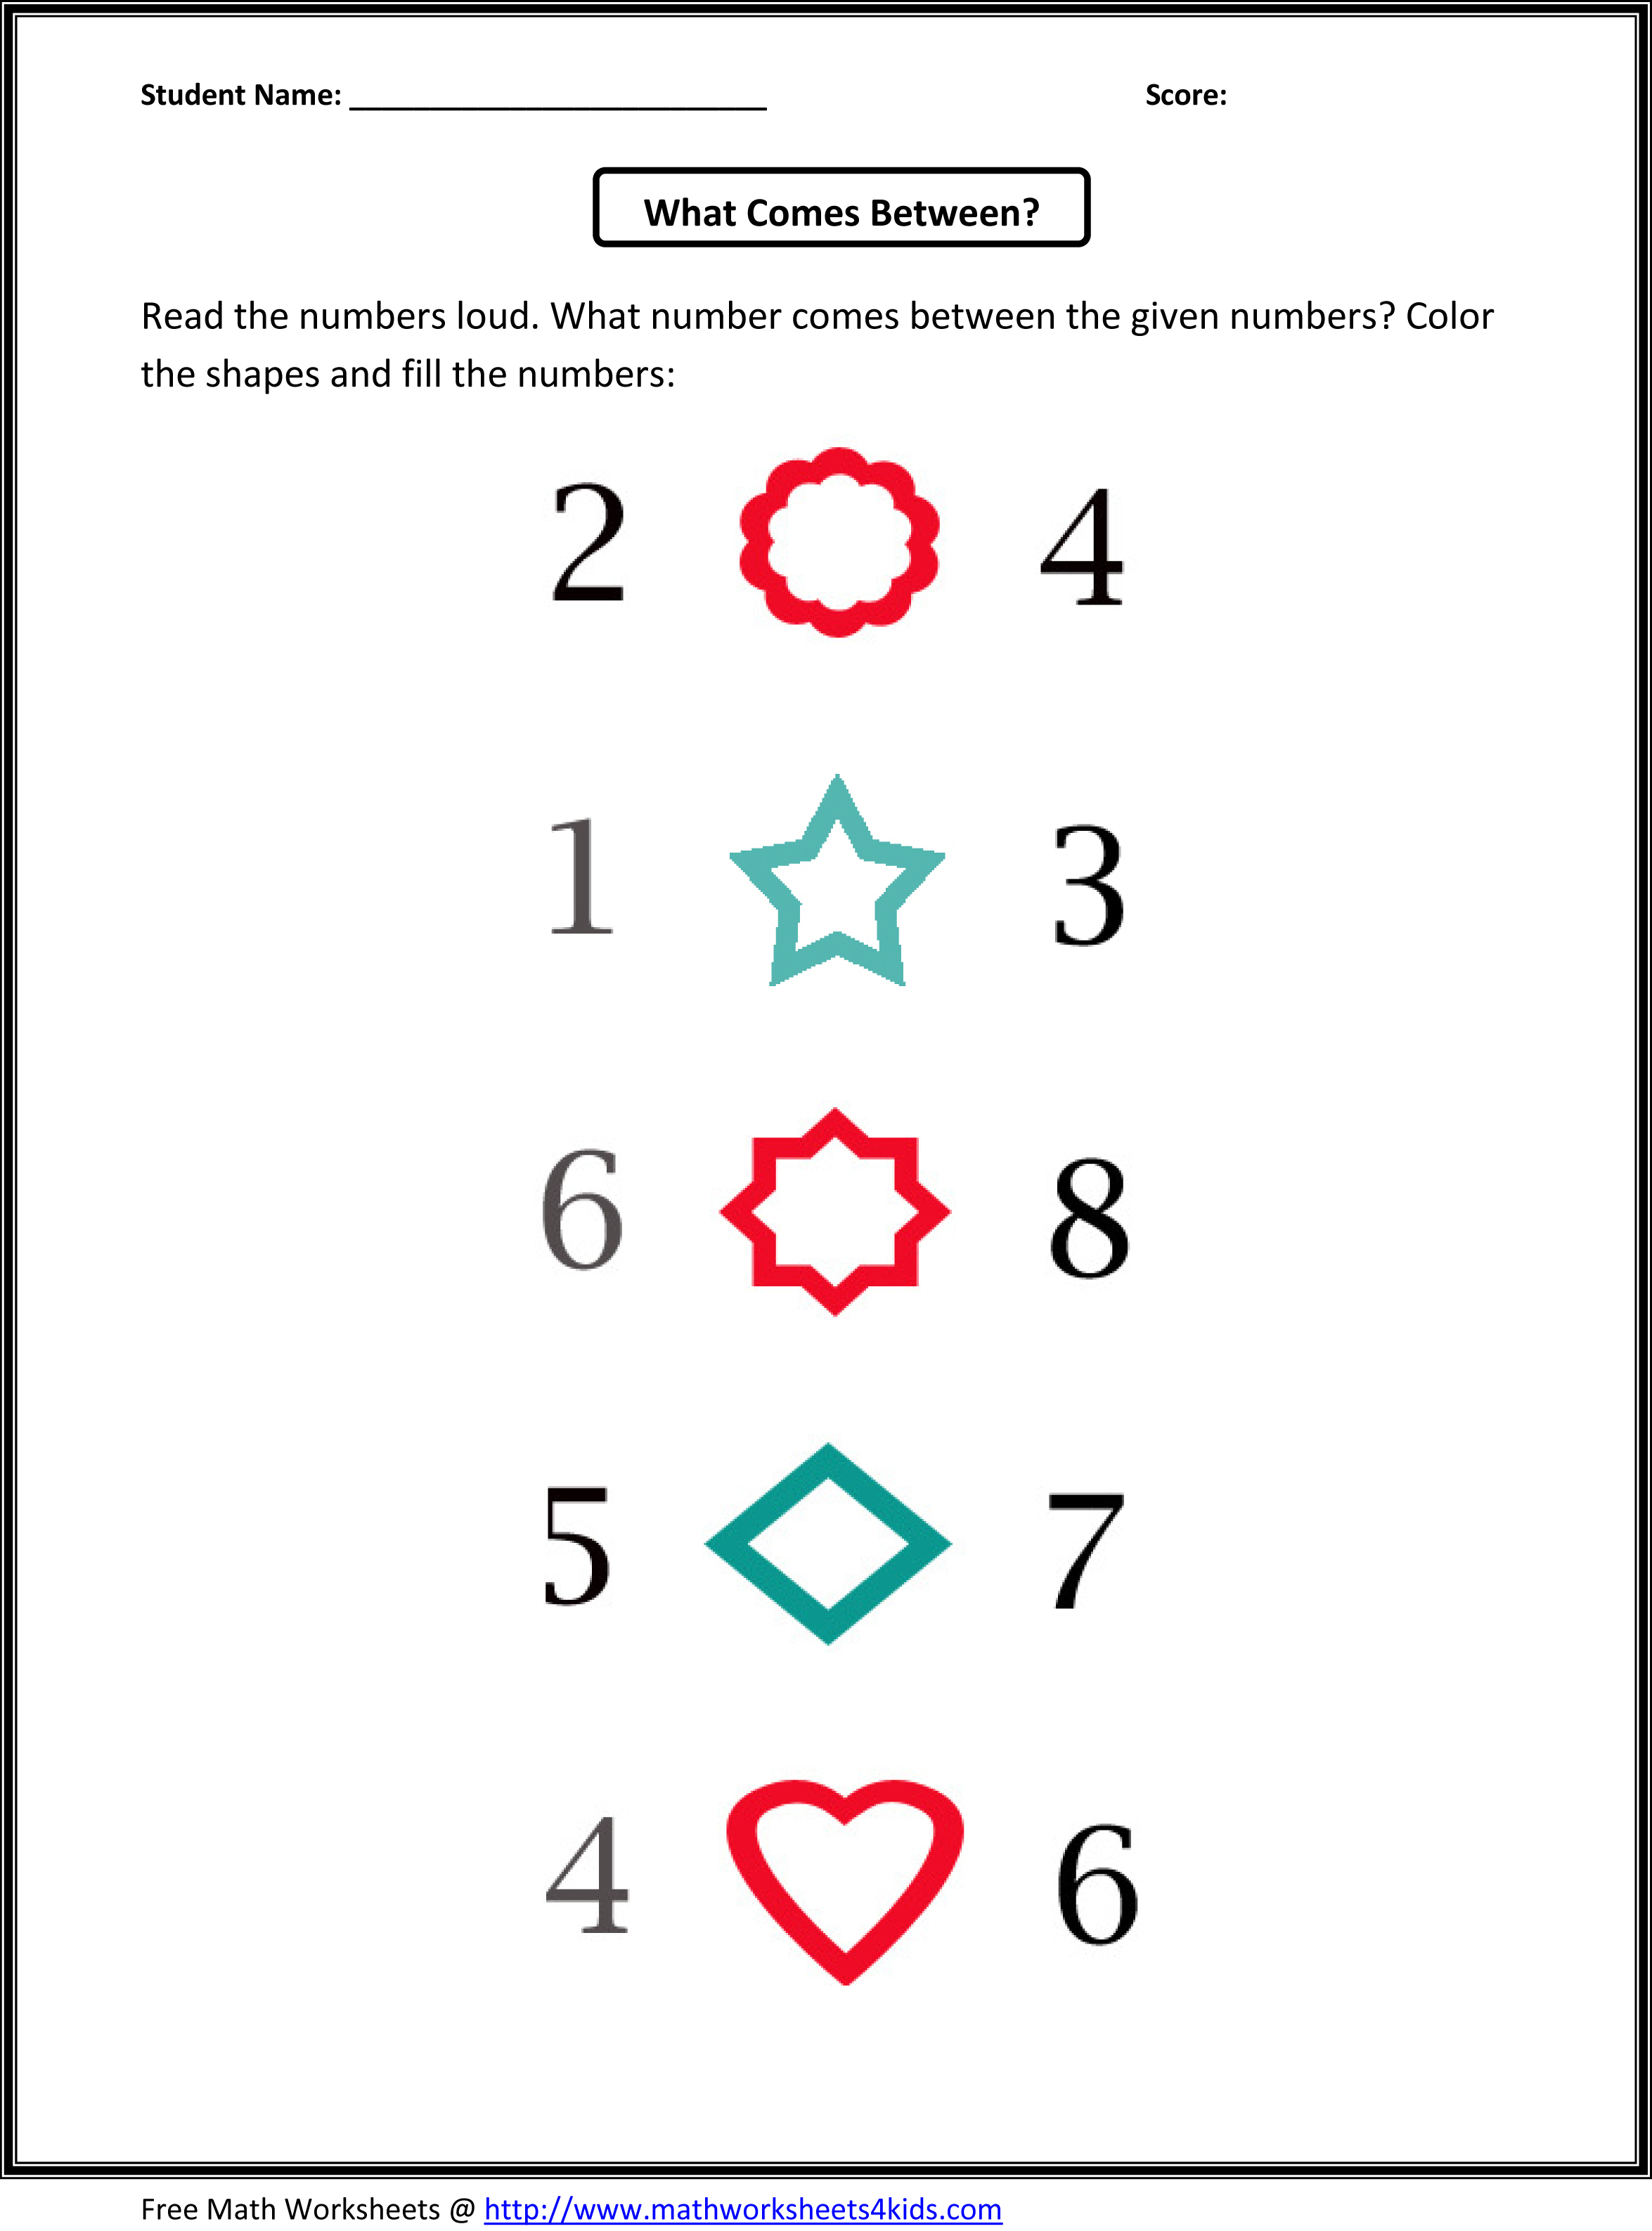 Number Patterns Worksheets Patterns